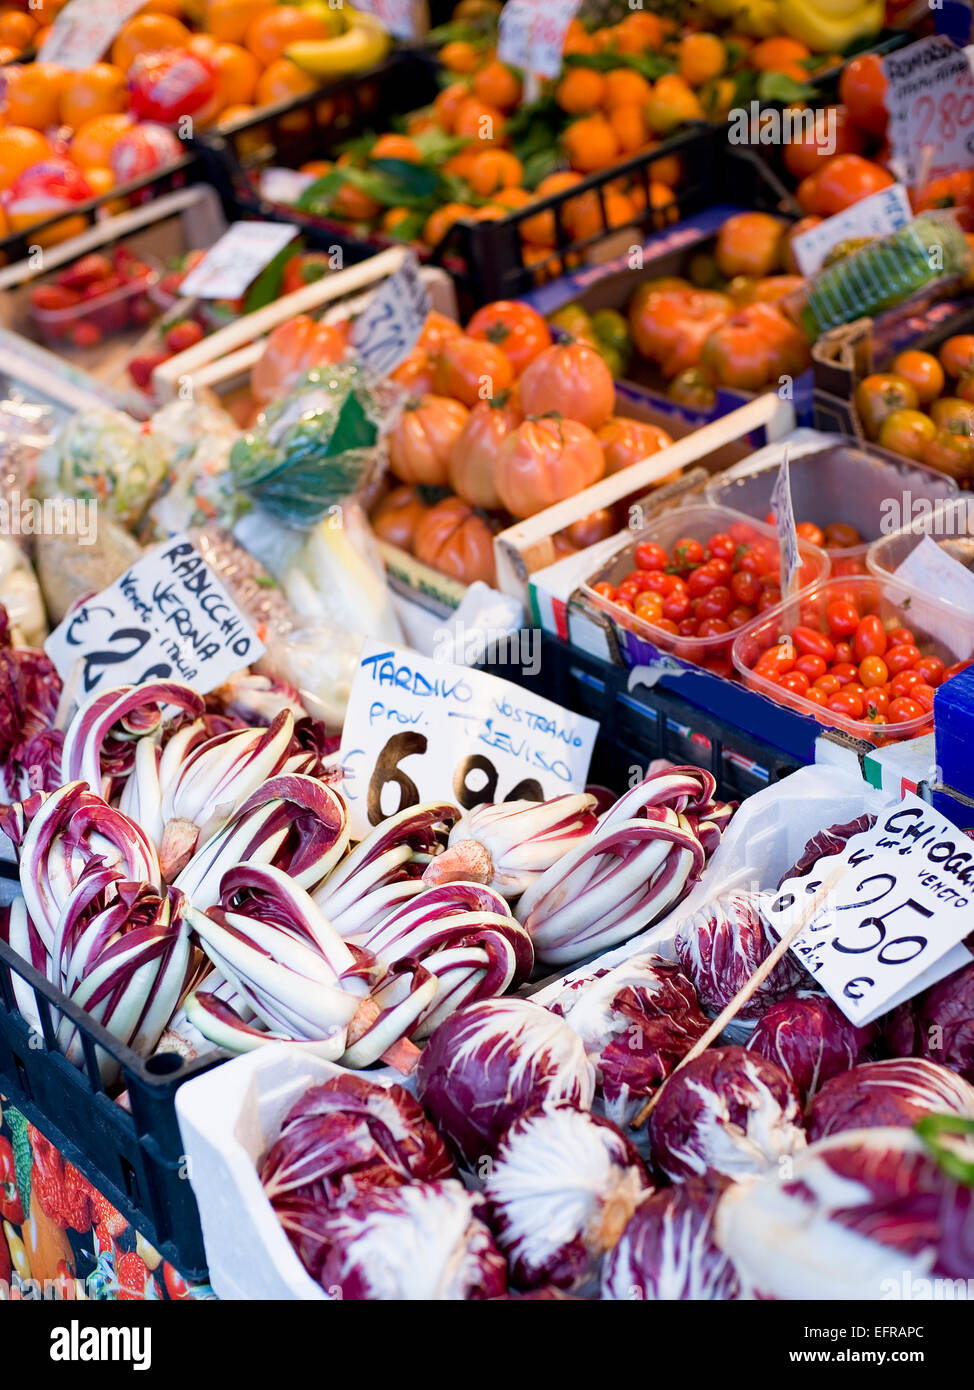 A market stall laden with fresh vegetables at the Rialto Food market. - Stock Image